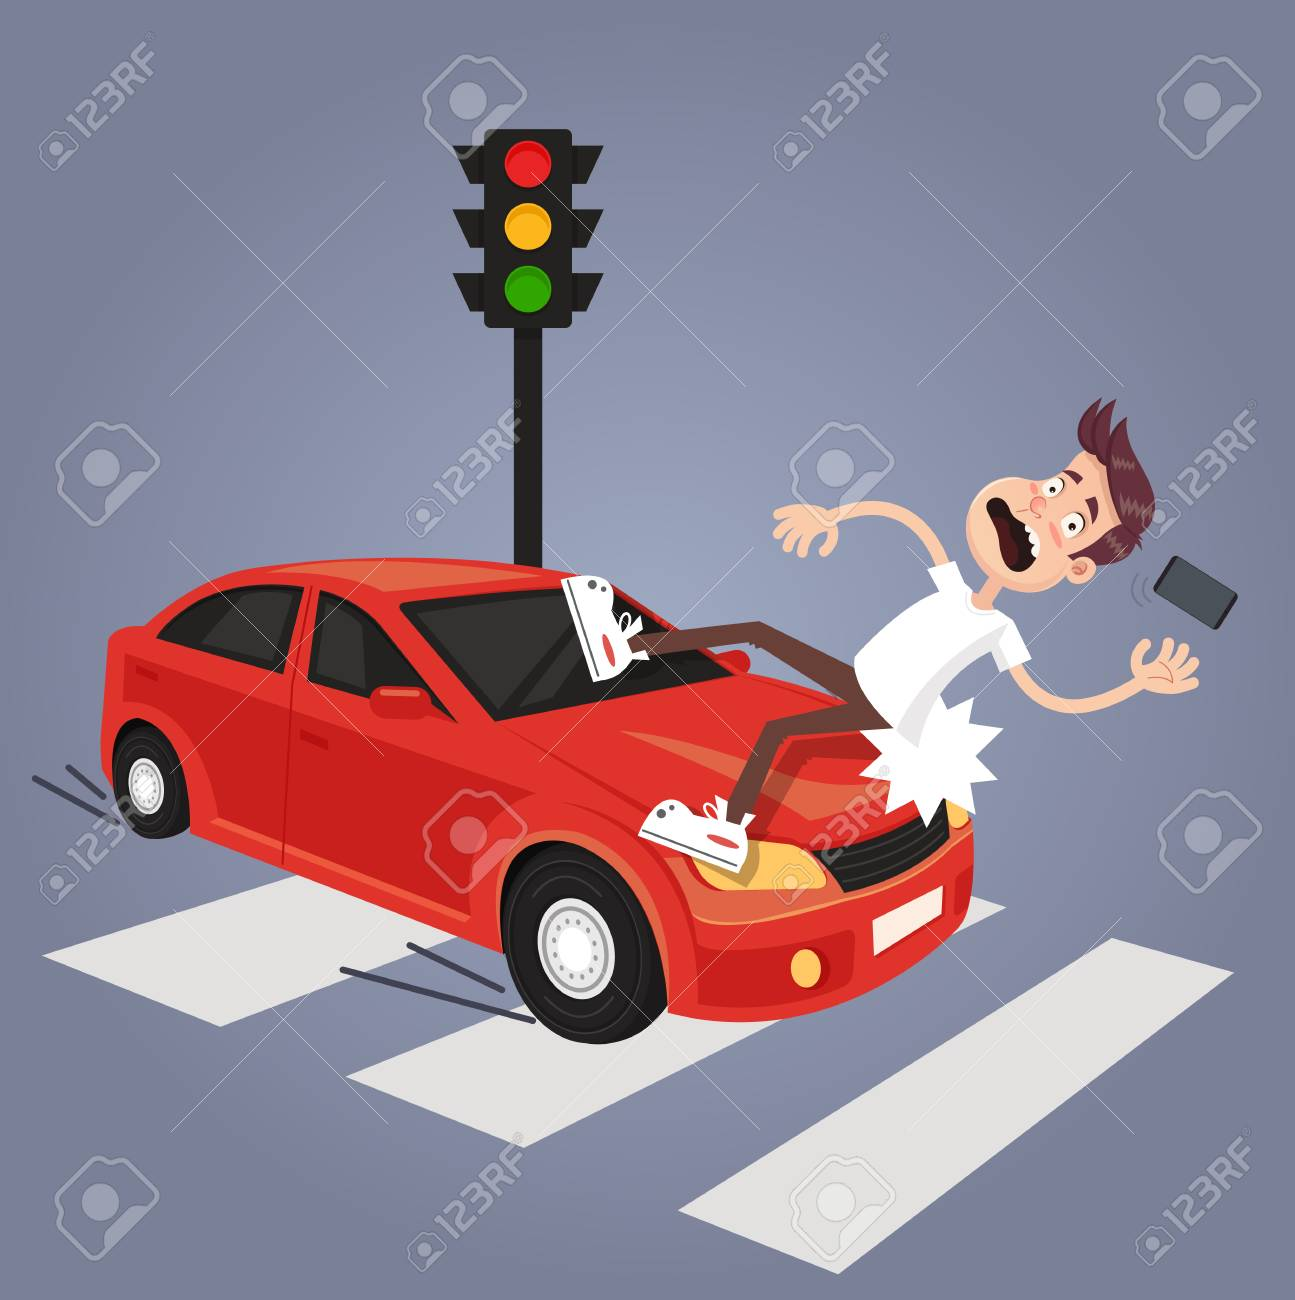 Driver hit careless man character with phone by car. Road car drunk driver and careless pedestrian accident concept. Vector flat cartoon isolated illustration - 97995483